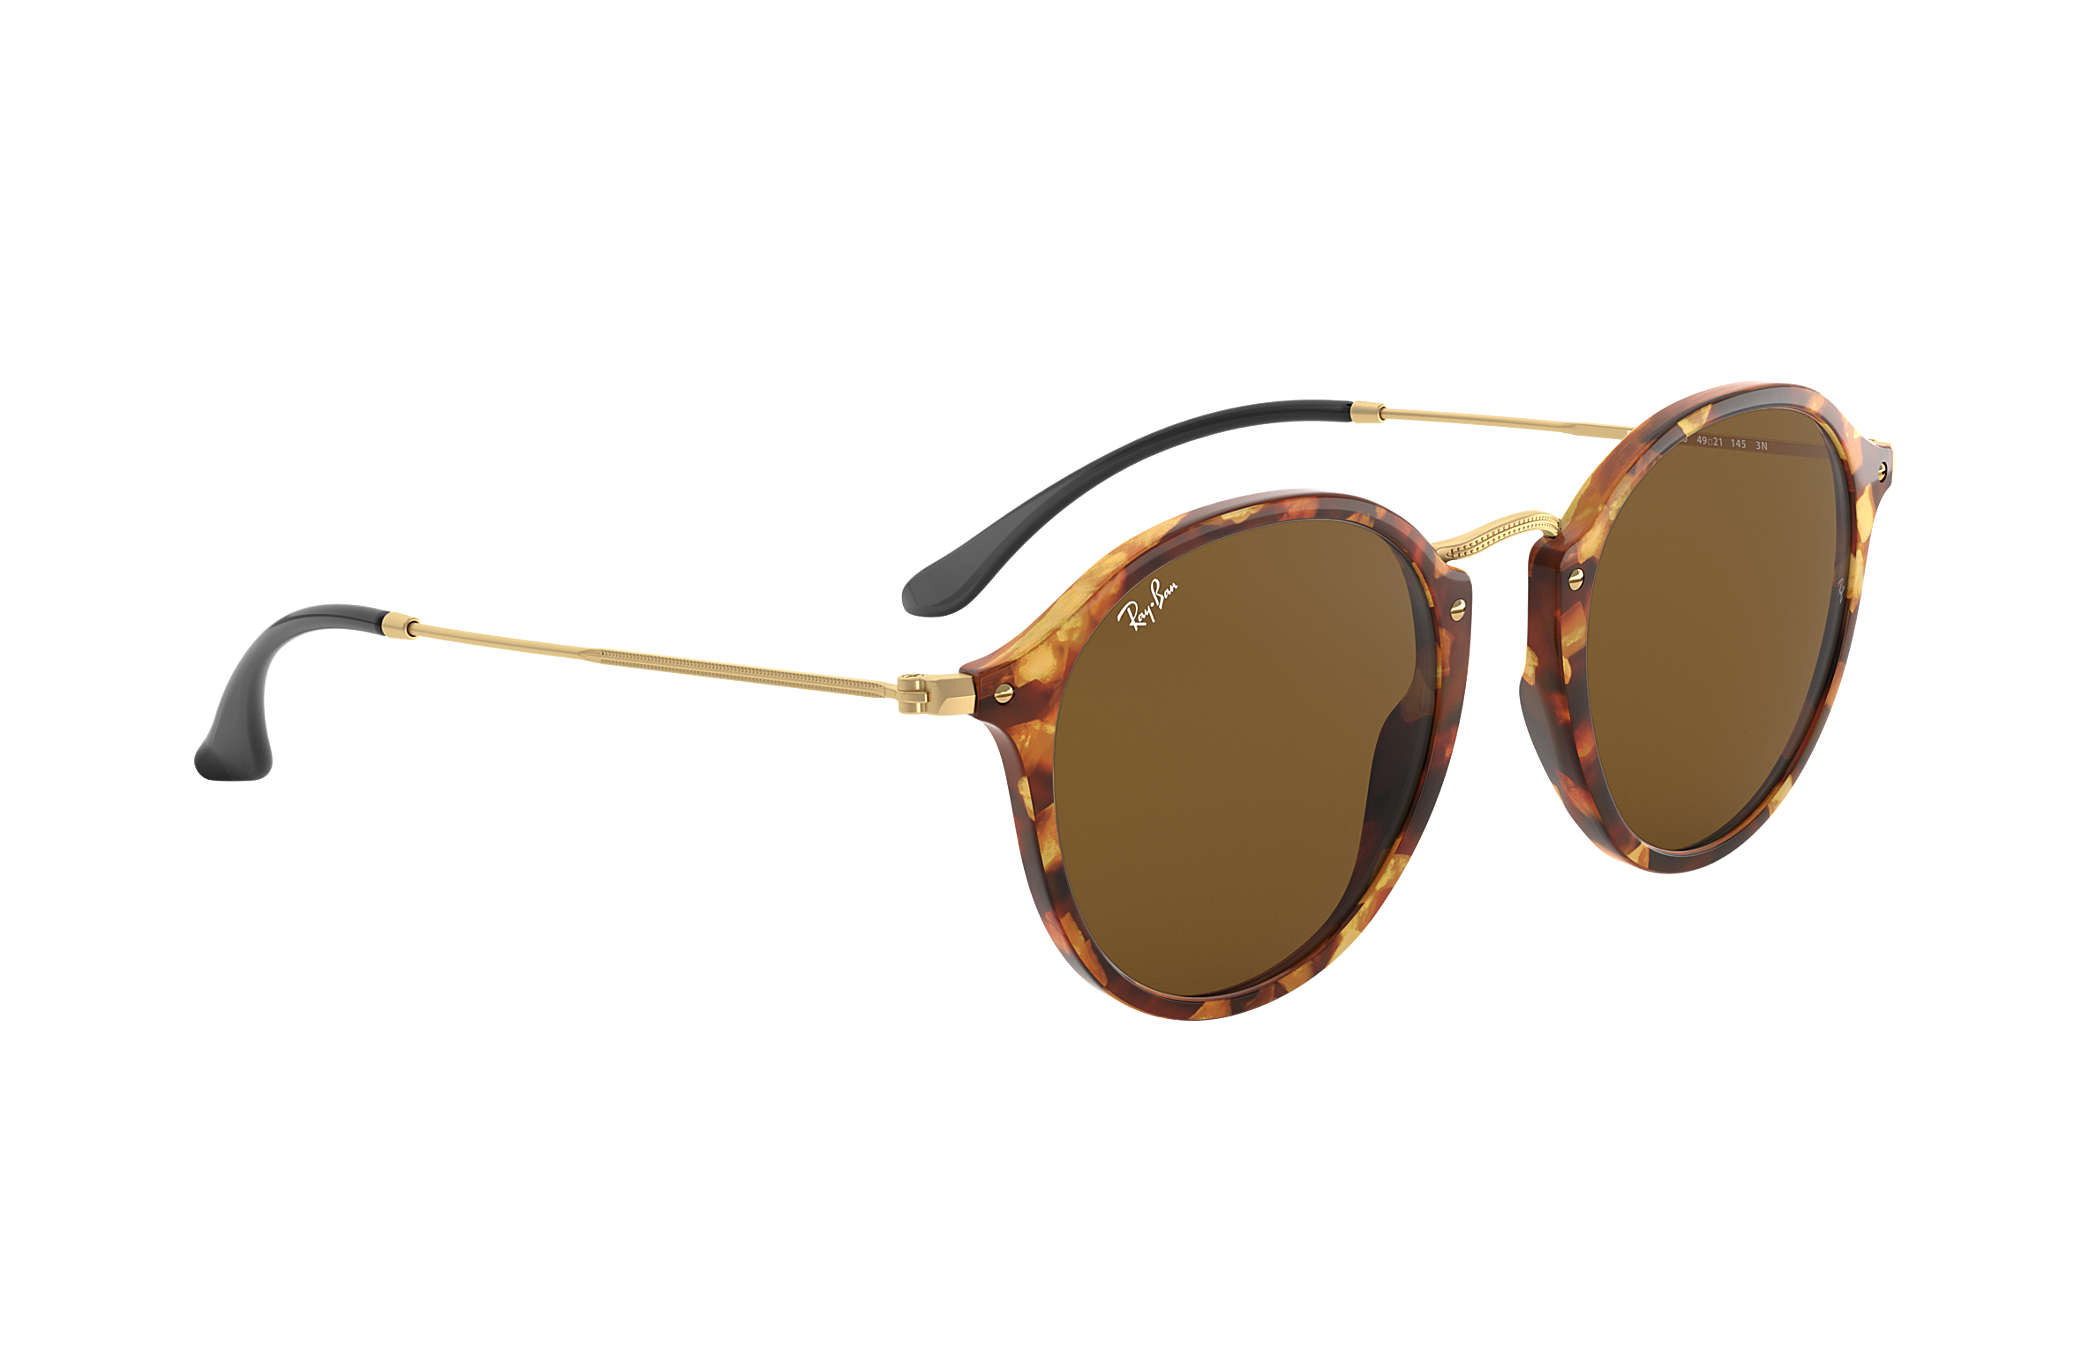 c105b4231e4fd Ray-Ban Round Fleck RB2447 Tortoise - Acetate - Brown Lenses ...